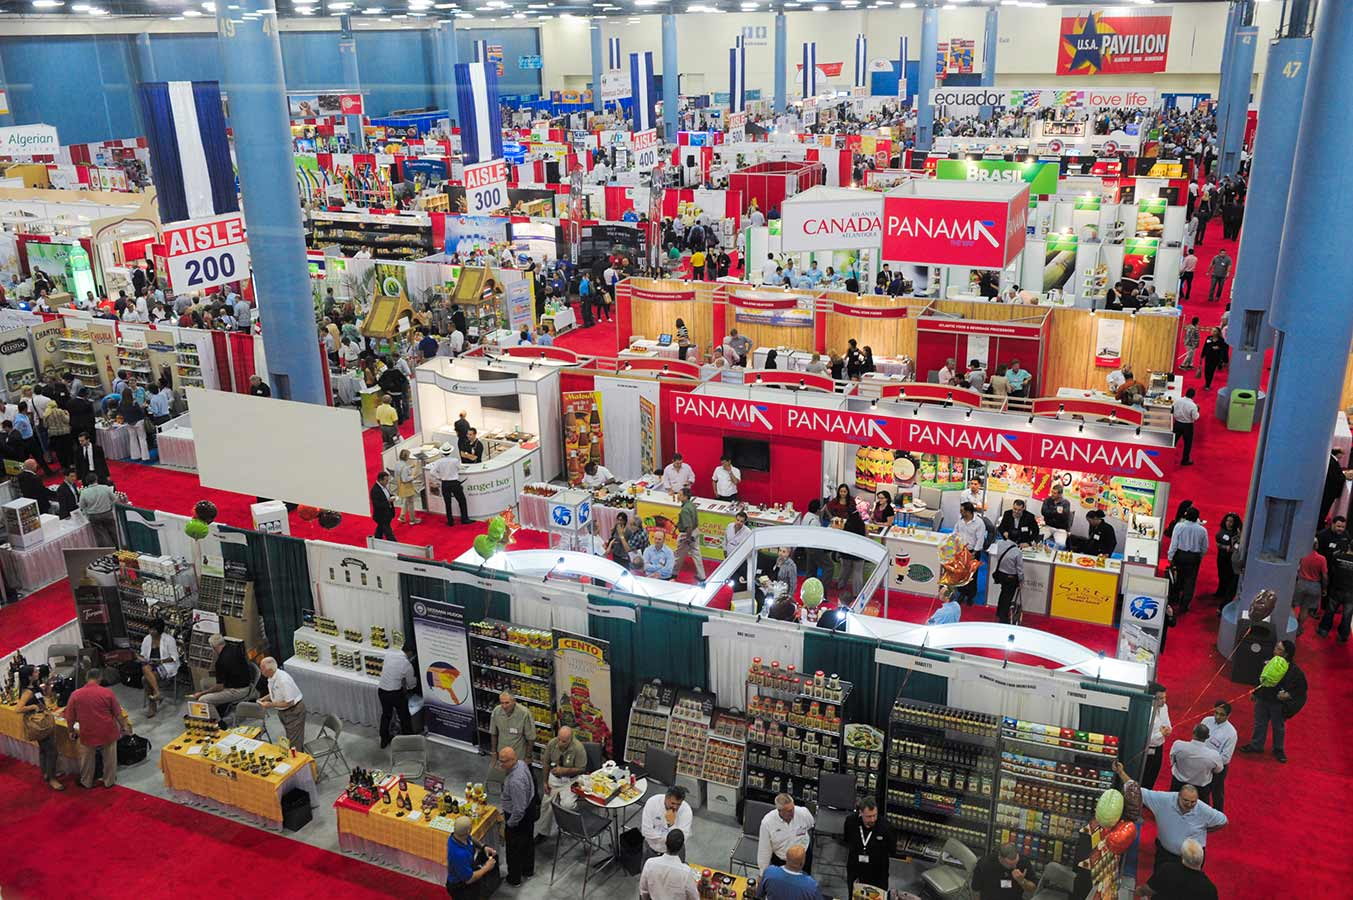 A bird's eye view is shown of a food show. There are several aisles set-up with many food items and brands positioned in front and around the stands. Many people are gathered around each booth.